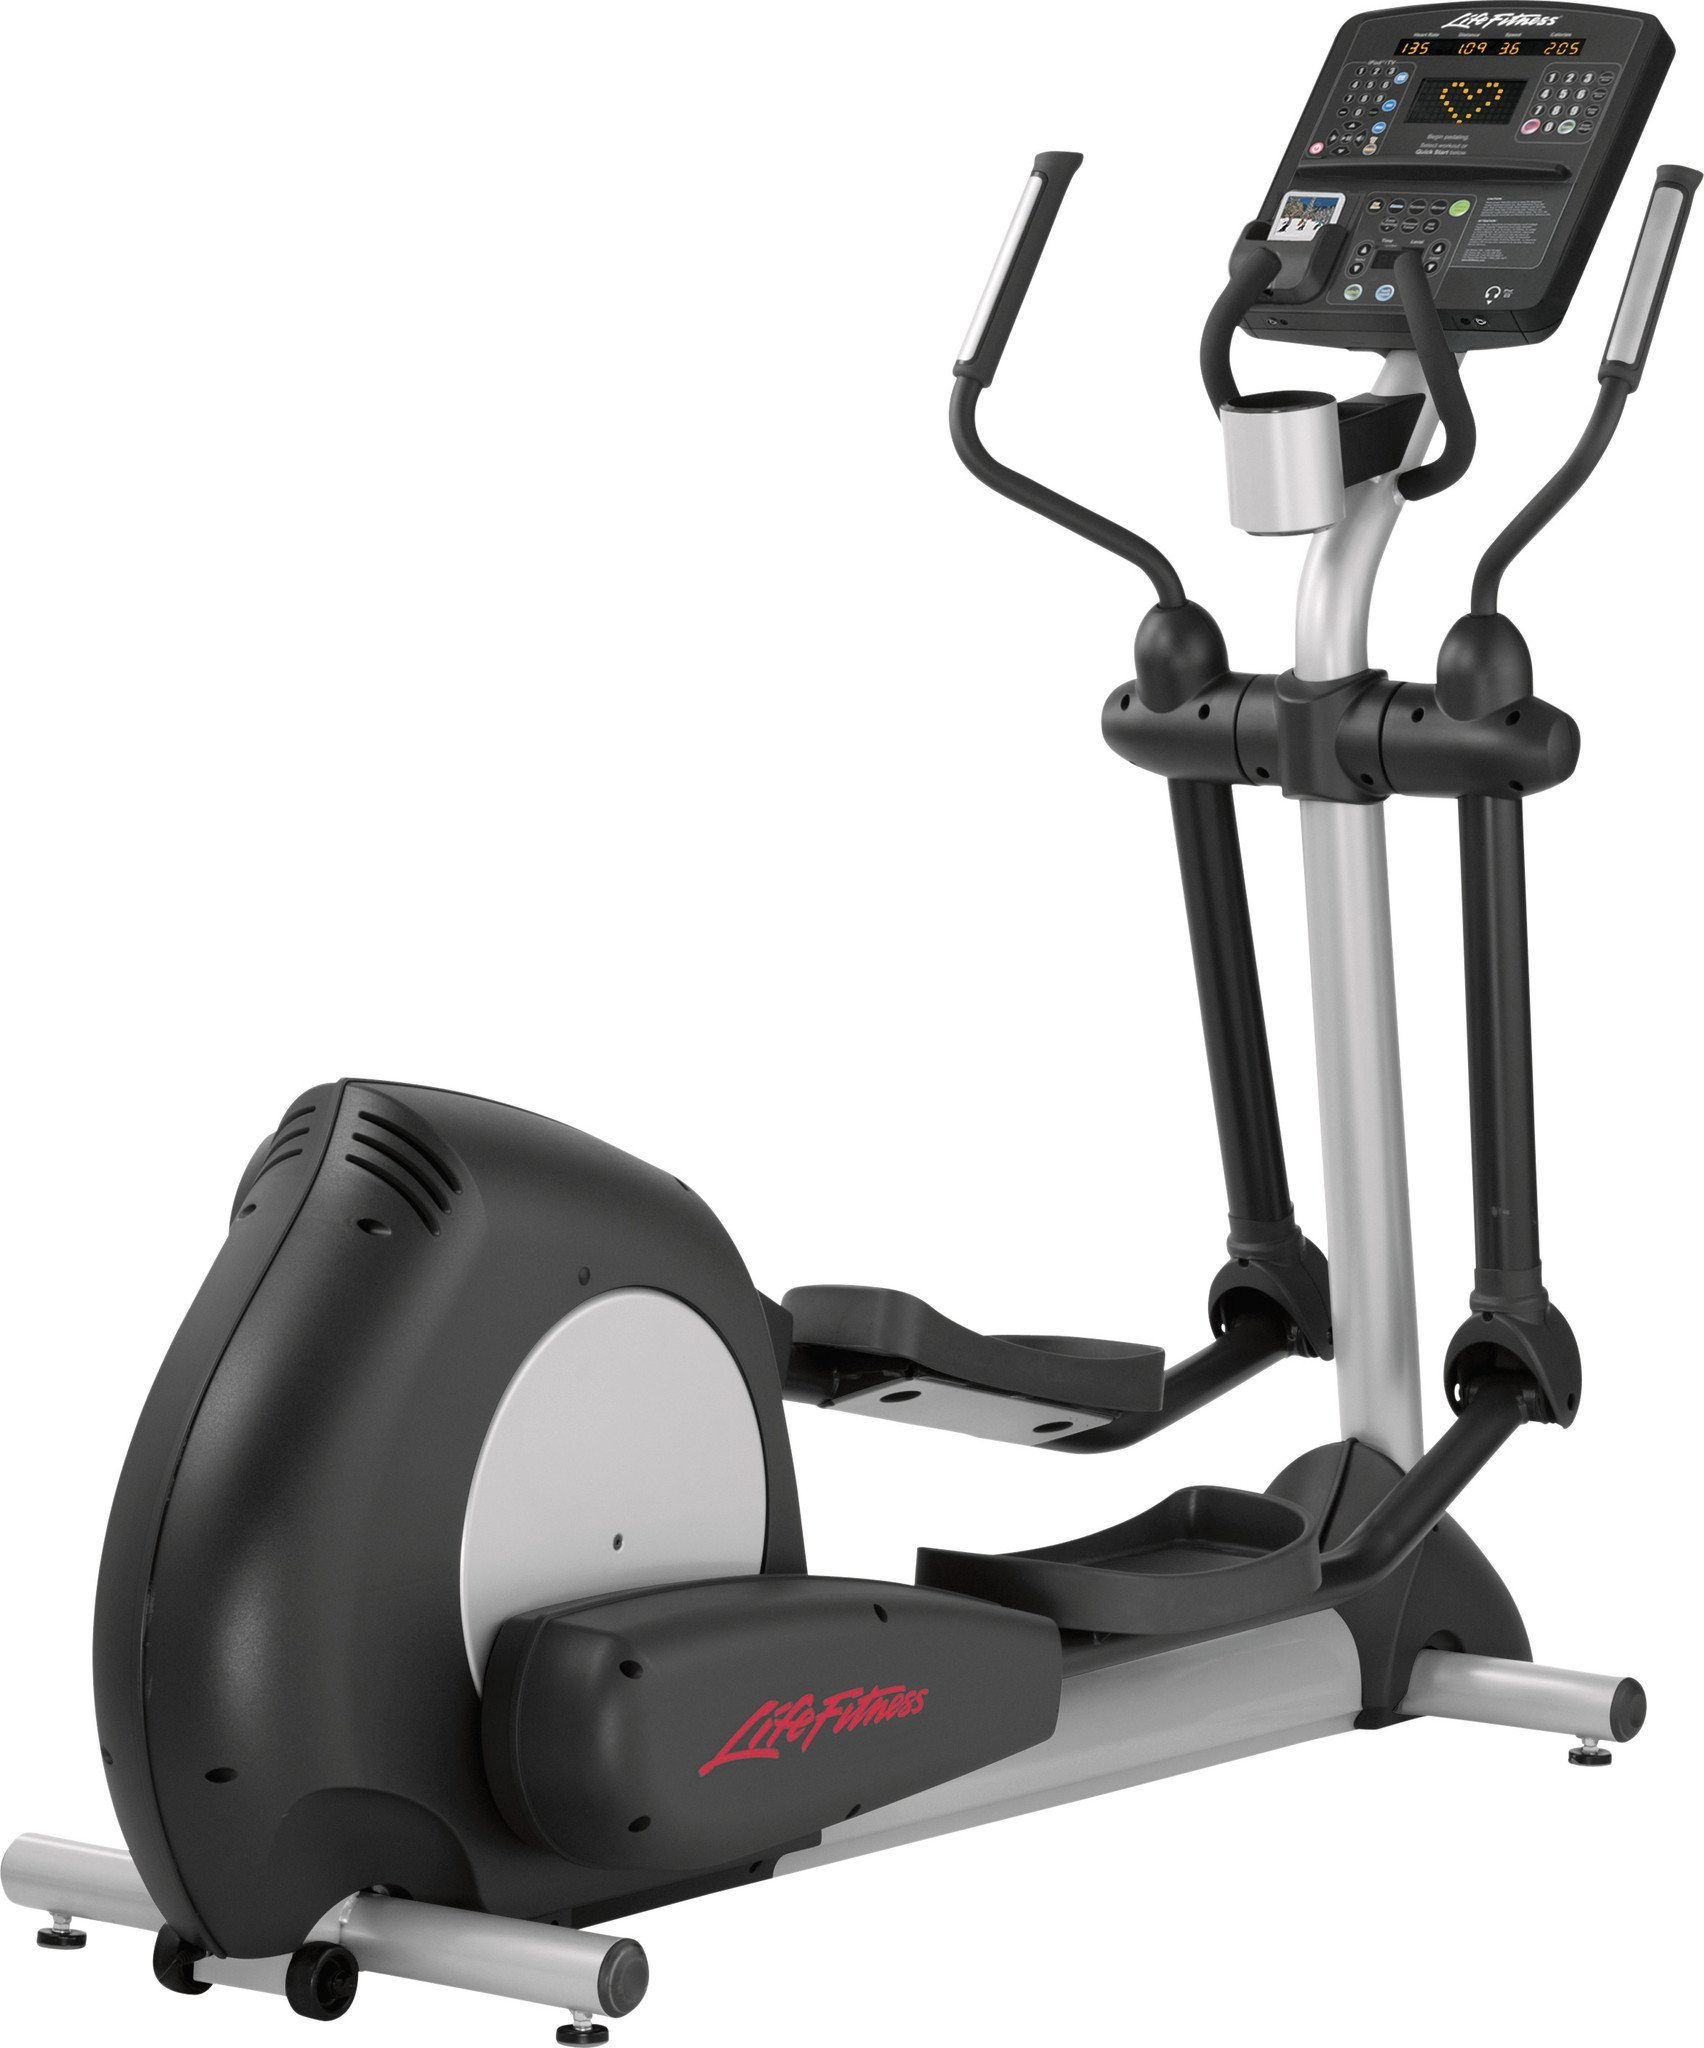 LifeFitness 95 Integrity Elliptical